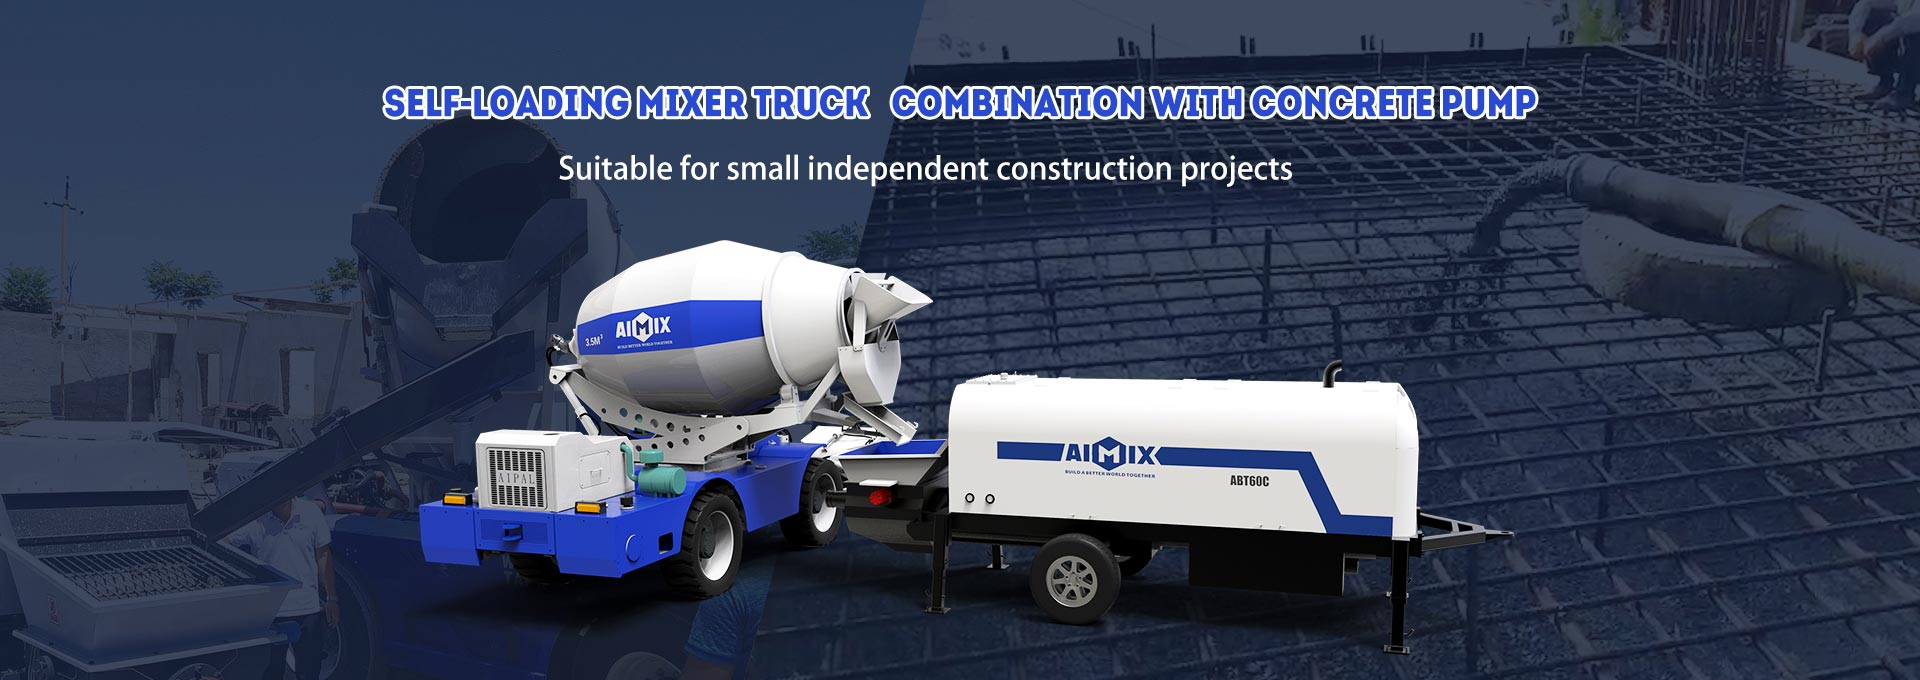 AS Series Self-loading Mixer Truck Combination with Concrete Pump